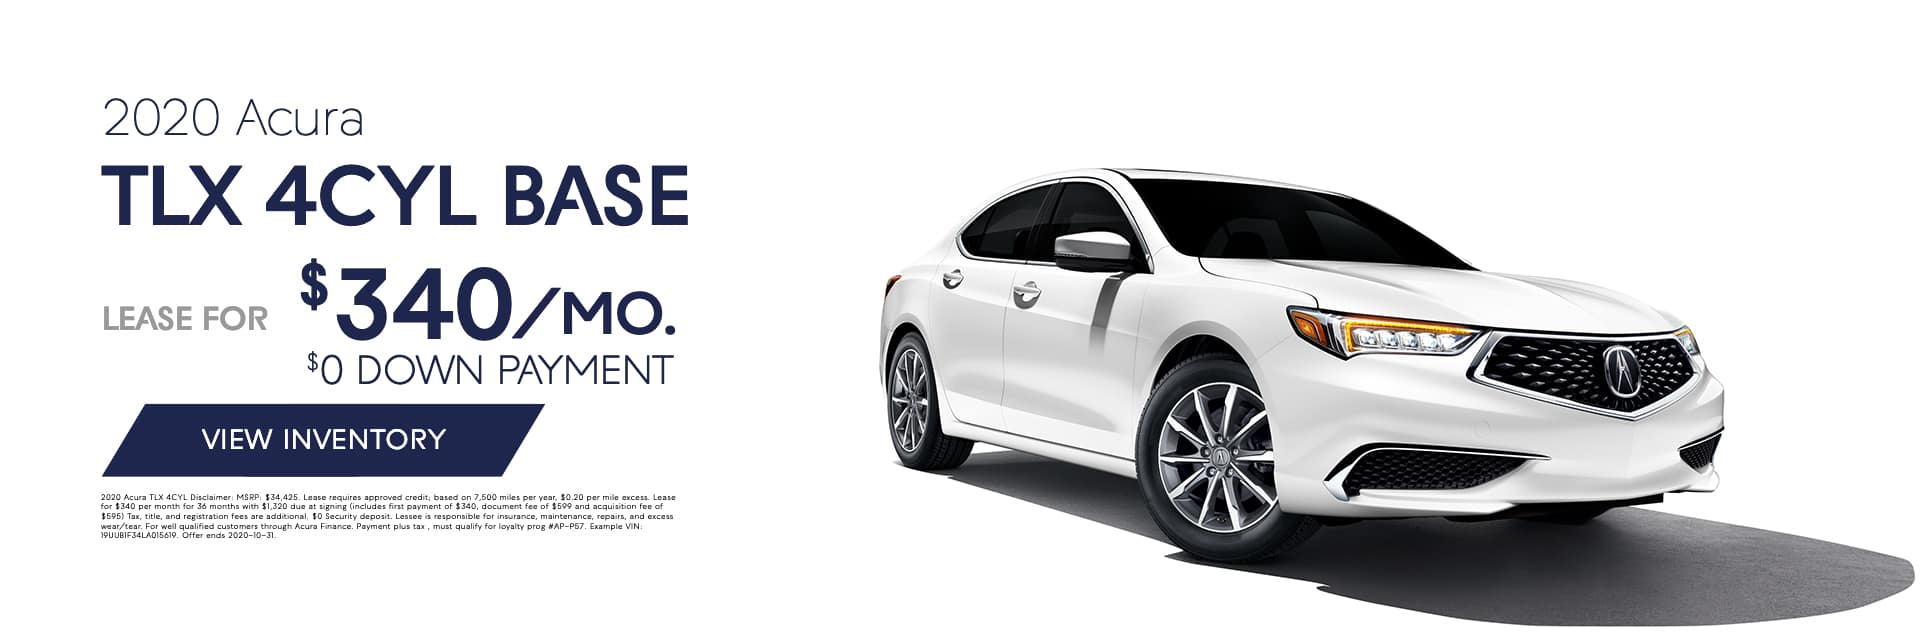 EAG_BAcura_Banner_2020 Acura TLX 4CYL BASE